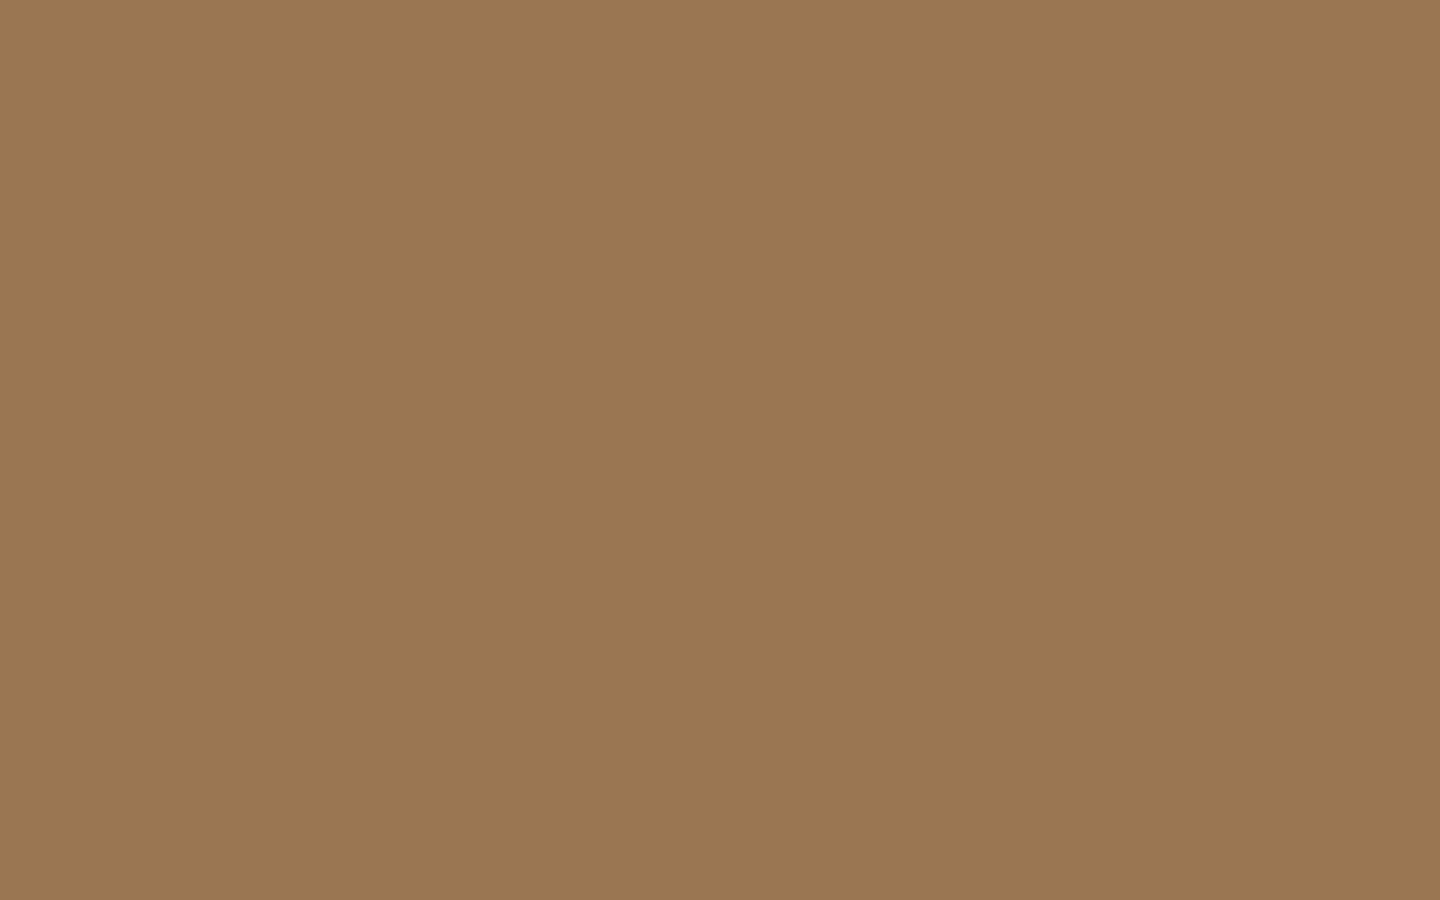 1440x900 Dirt Solid Color Background